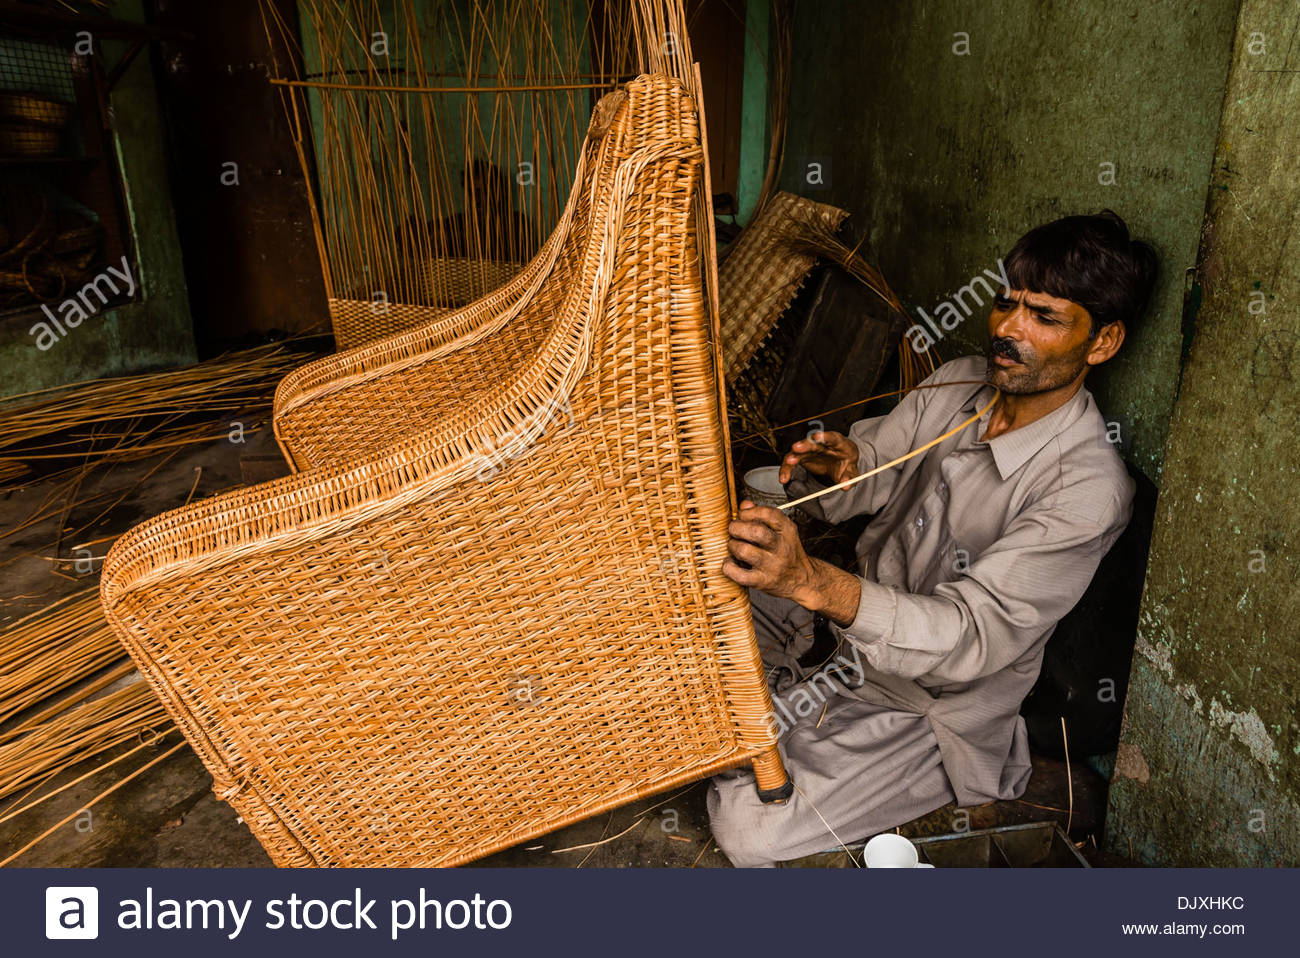 Man making ratan chairs, Srinagar, Kashmir, Jammu and Kashmir State; India. - Stock Image